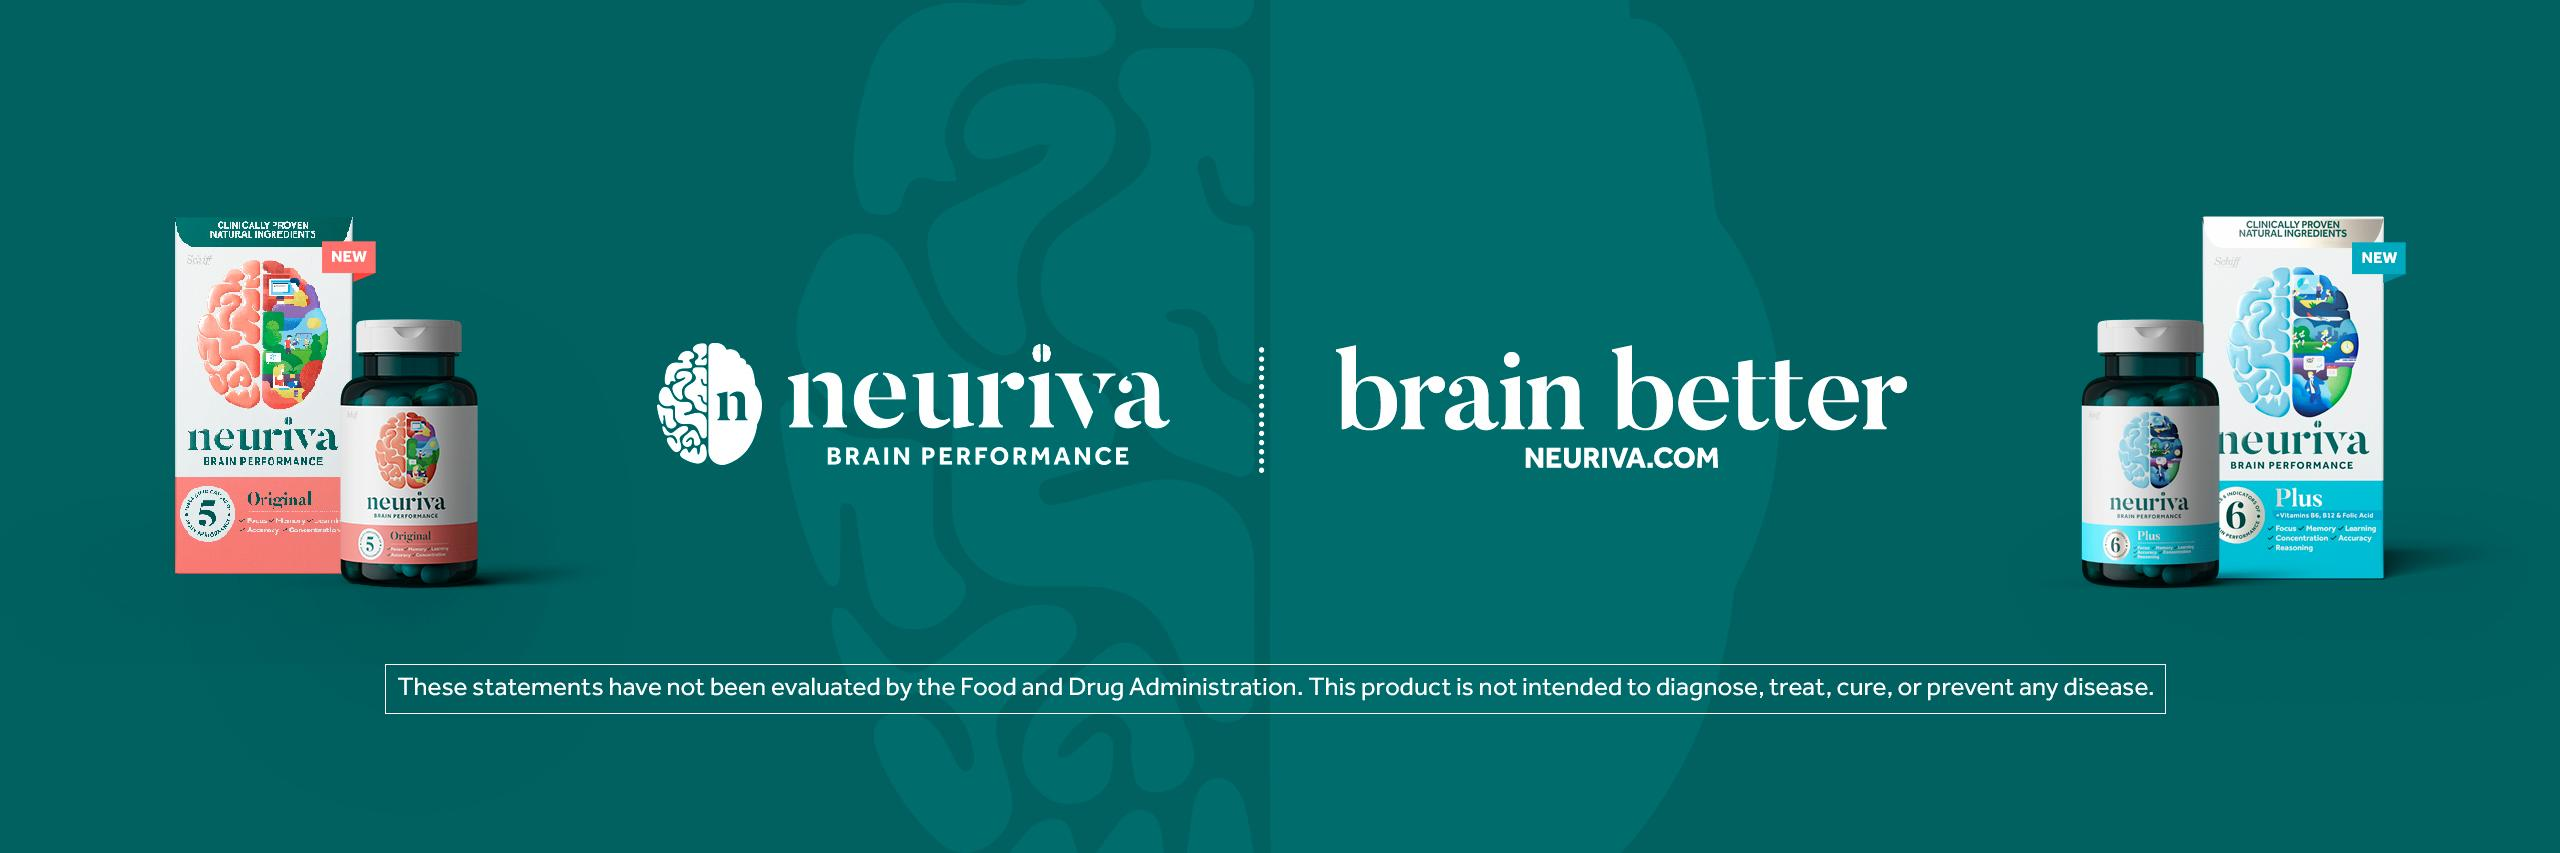 Did you catch us on @Jeopardy ? You know what you should look for when shopping for a brain supplement. #neuriva… https://t.co/eaeV2ZrLO6